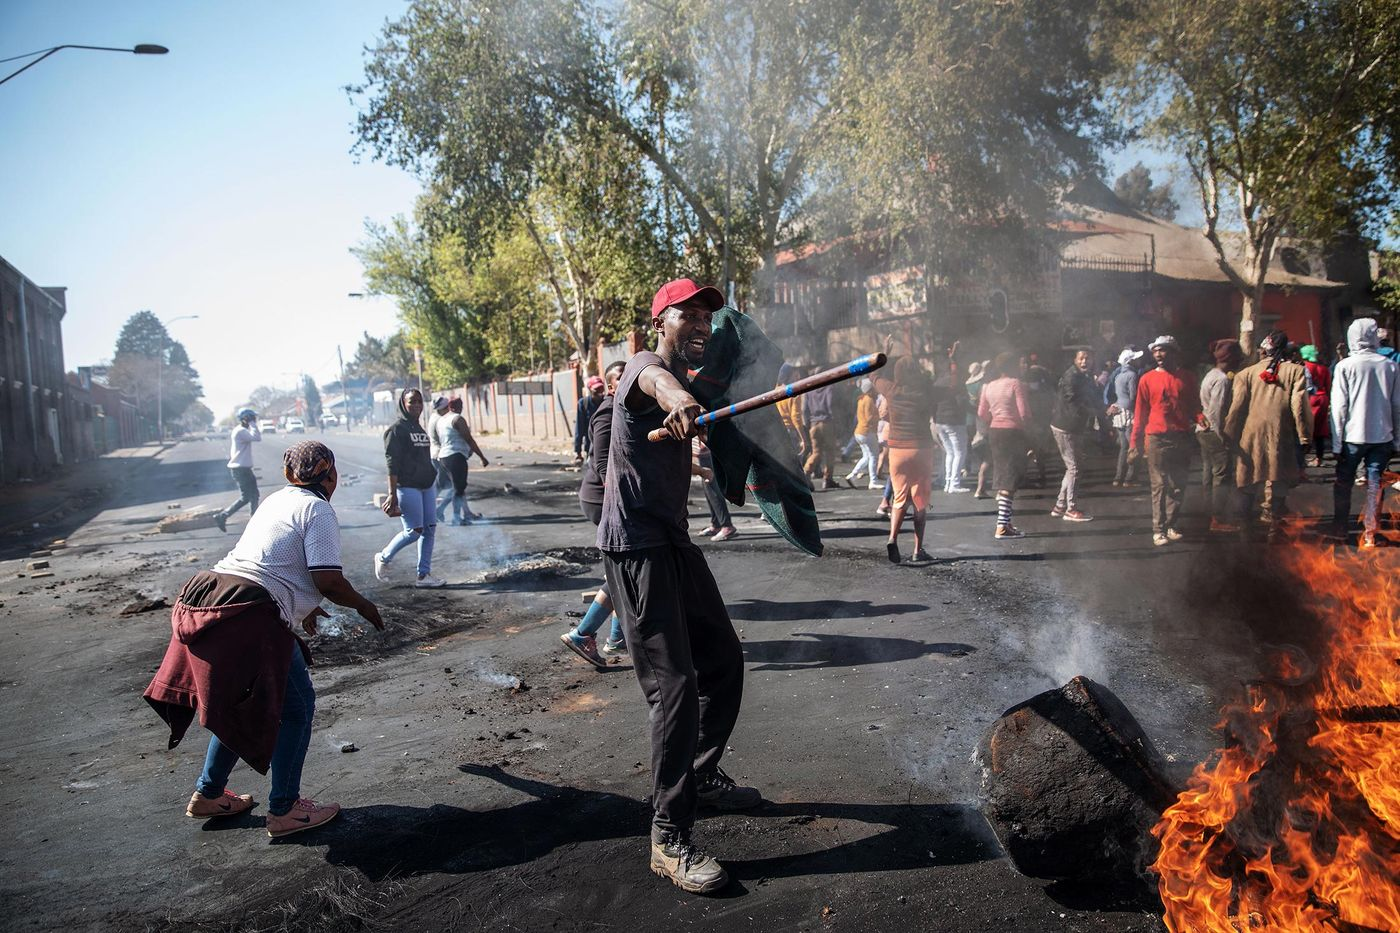 Nigerians to evacuate citizens from South Africa after xenophobic attacks on foreigners